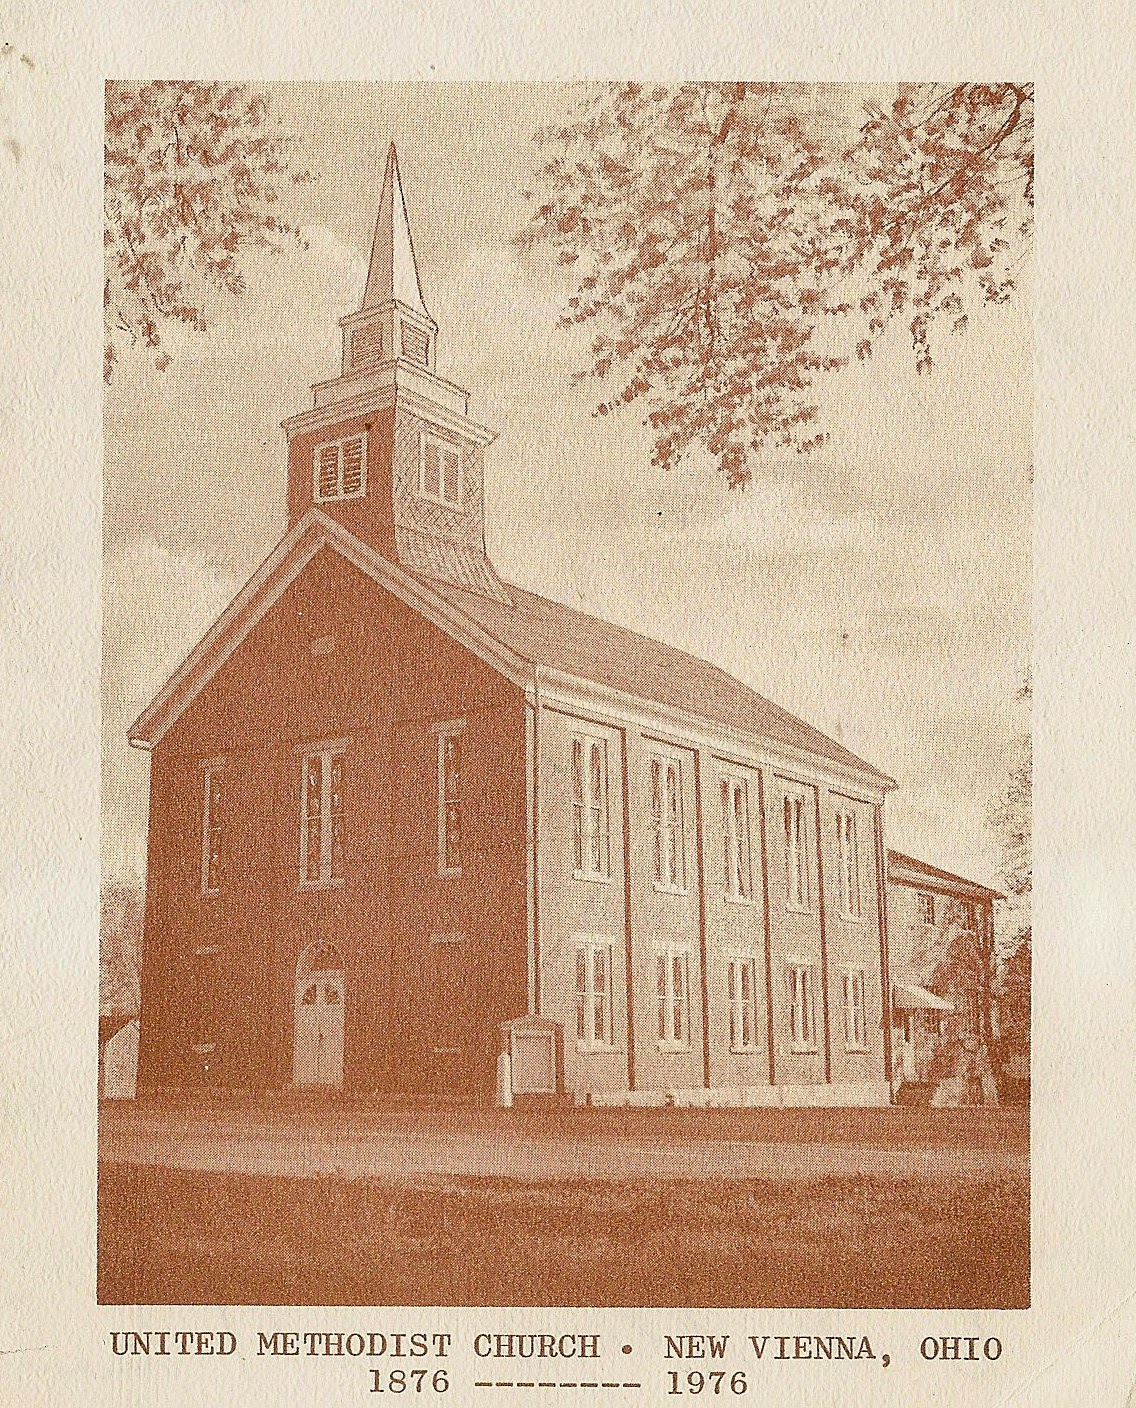 United Methodist Church O New Vienna Ohio 1876 1976 Front Of Notecard